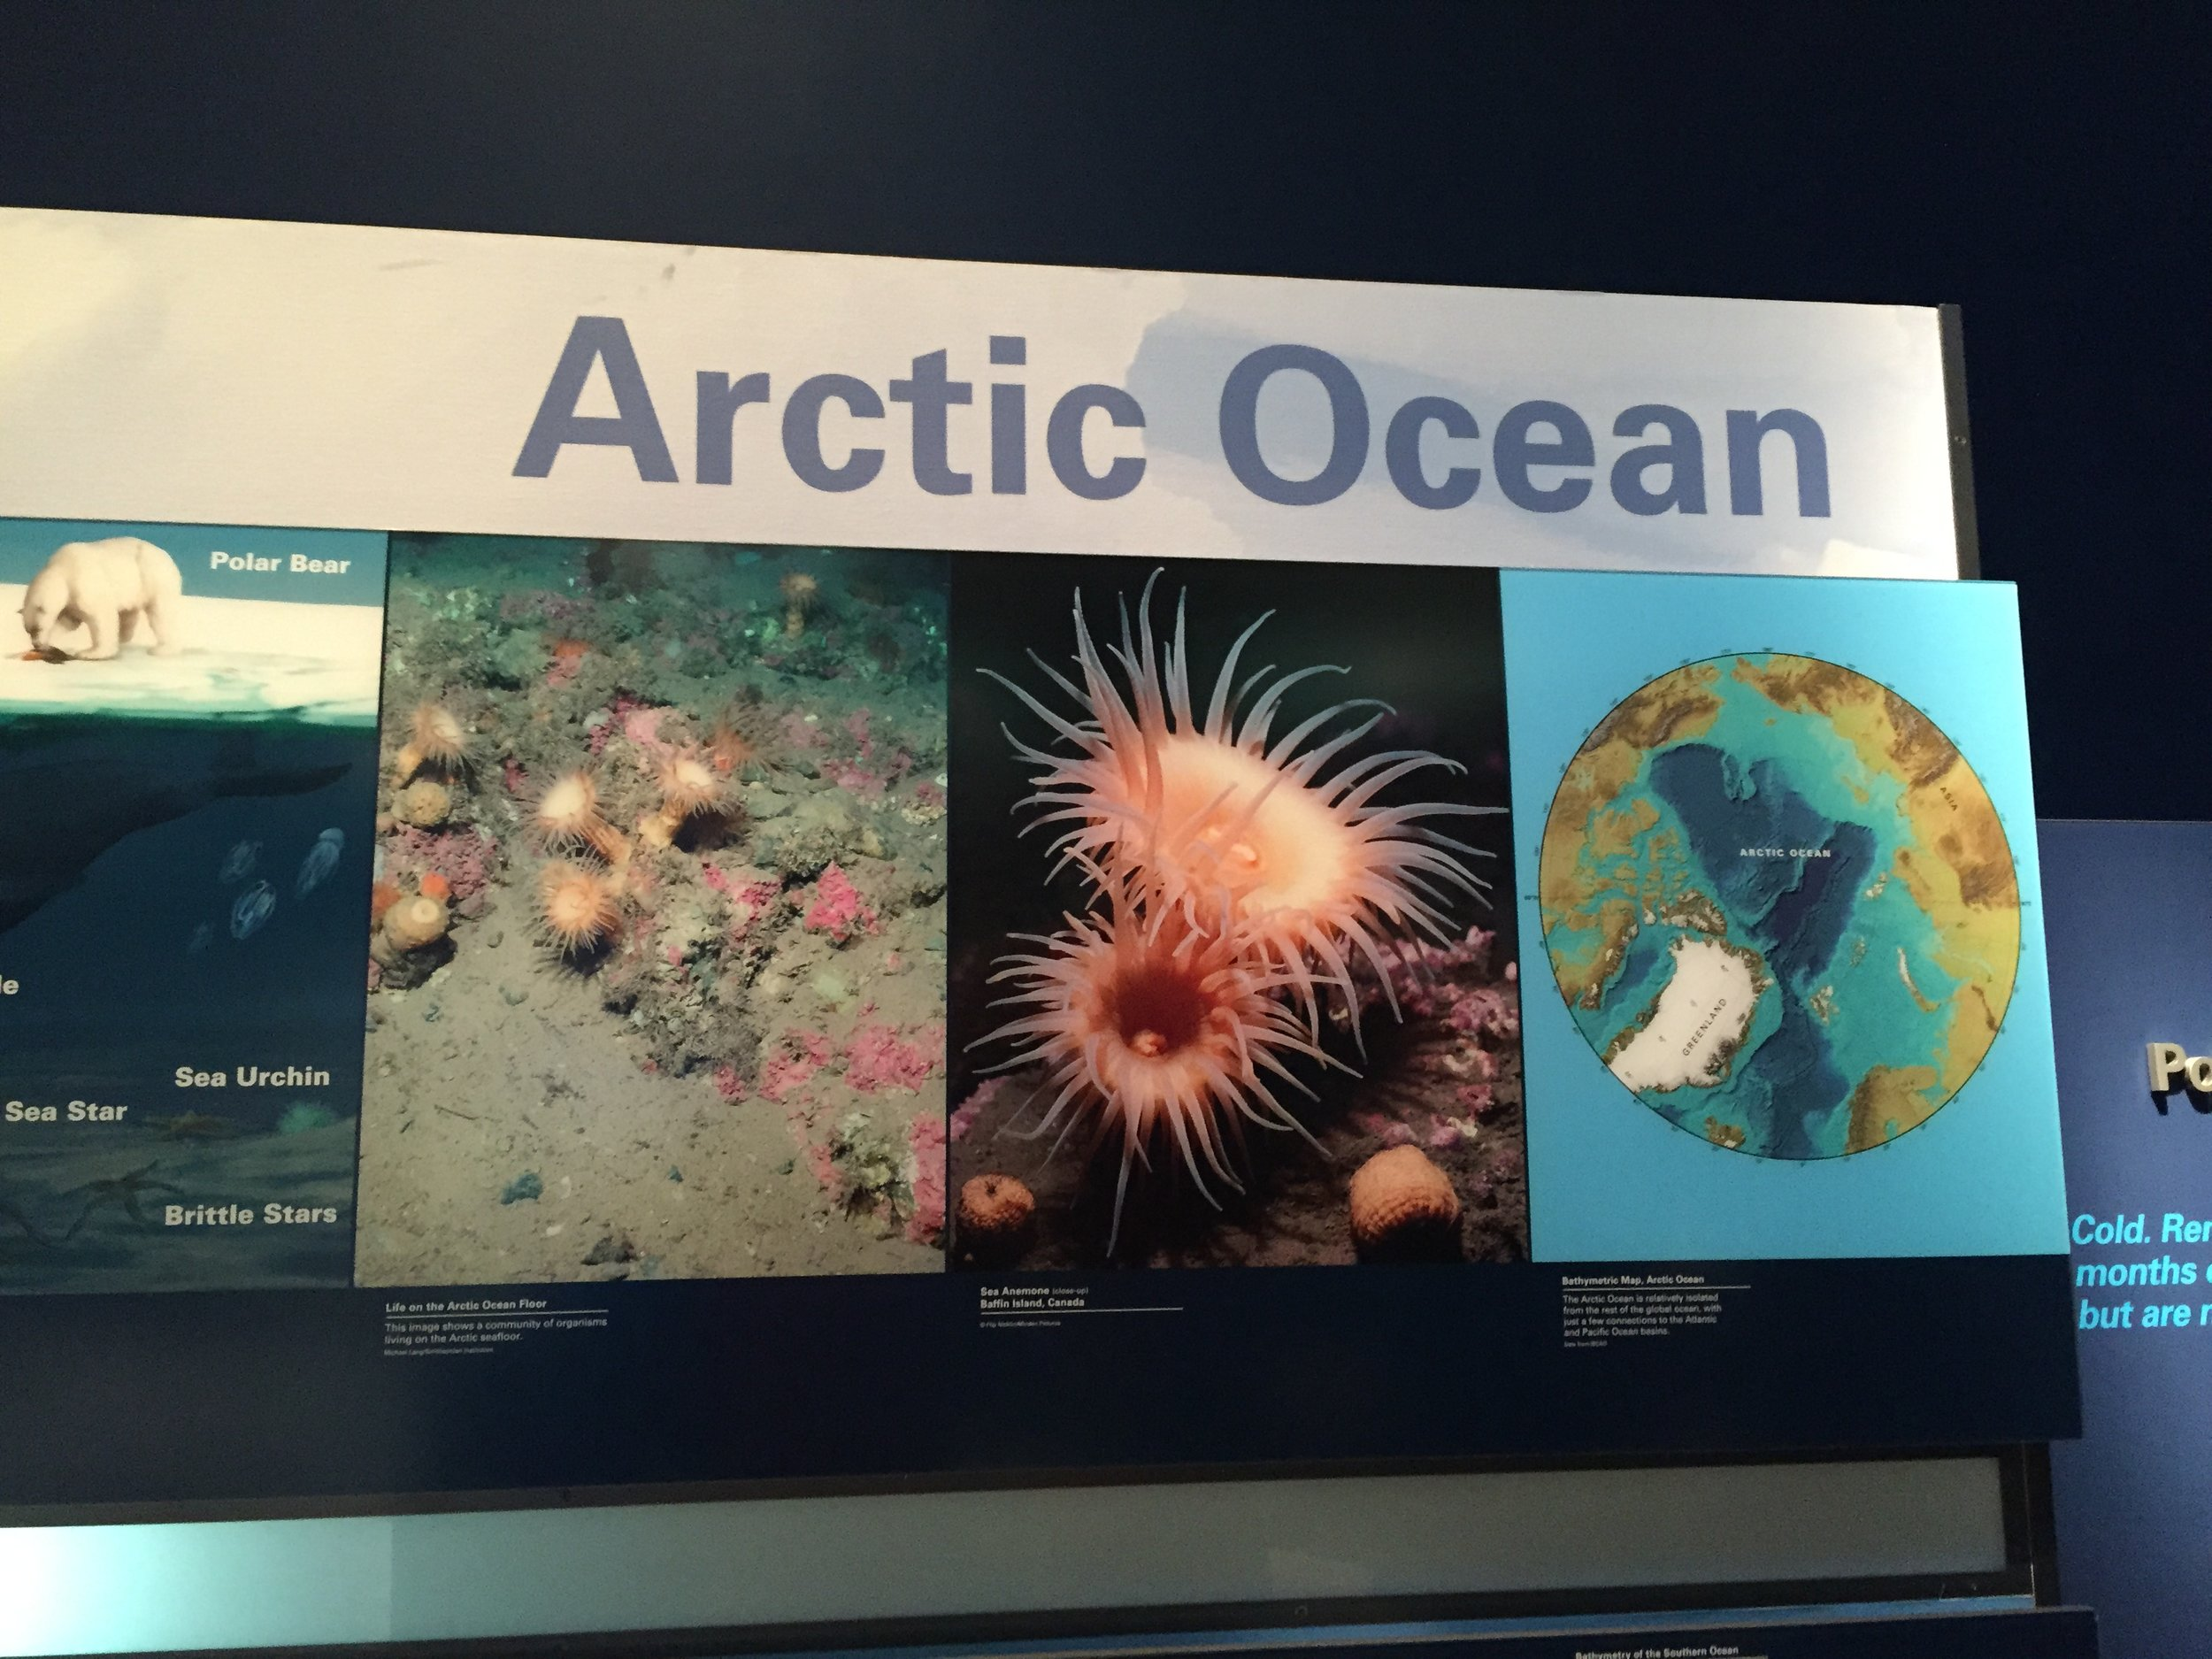 Visitors could explore the diversity of marine life found in the Artic Ocean in the museum's Sant Ocean Hall.